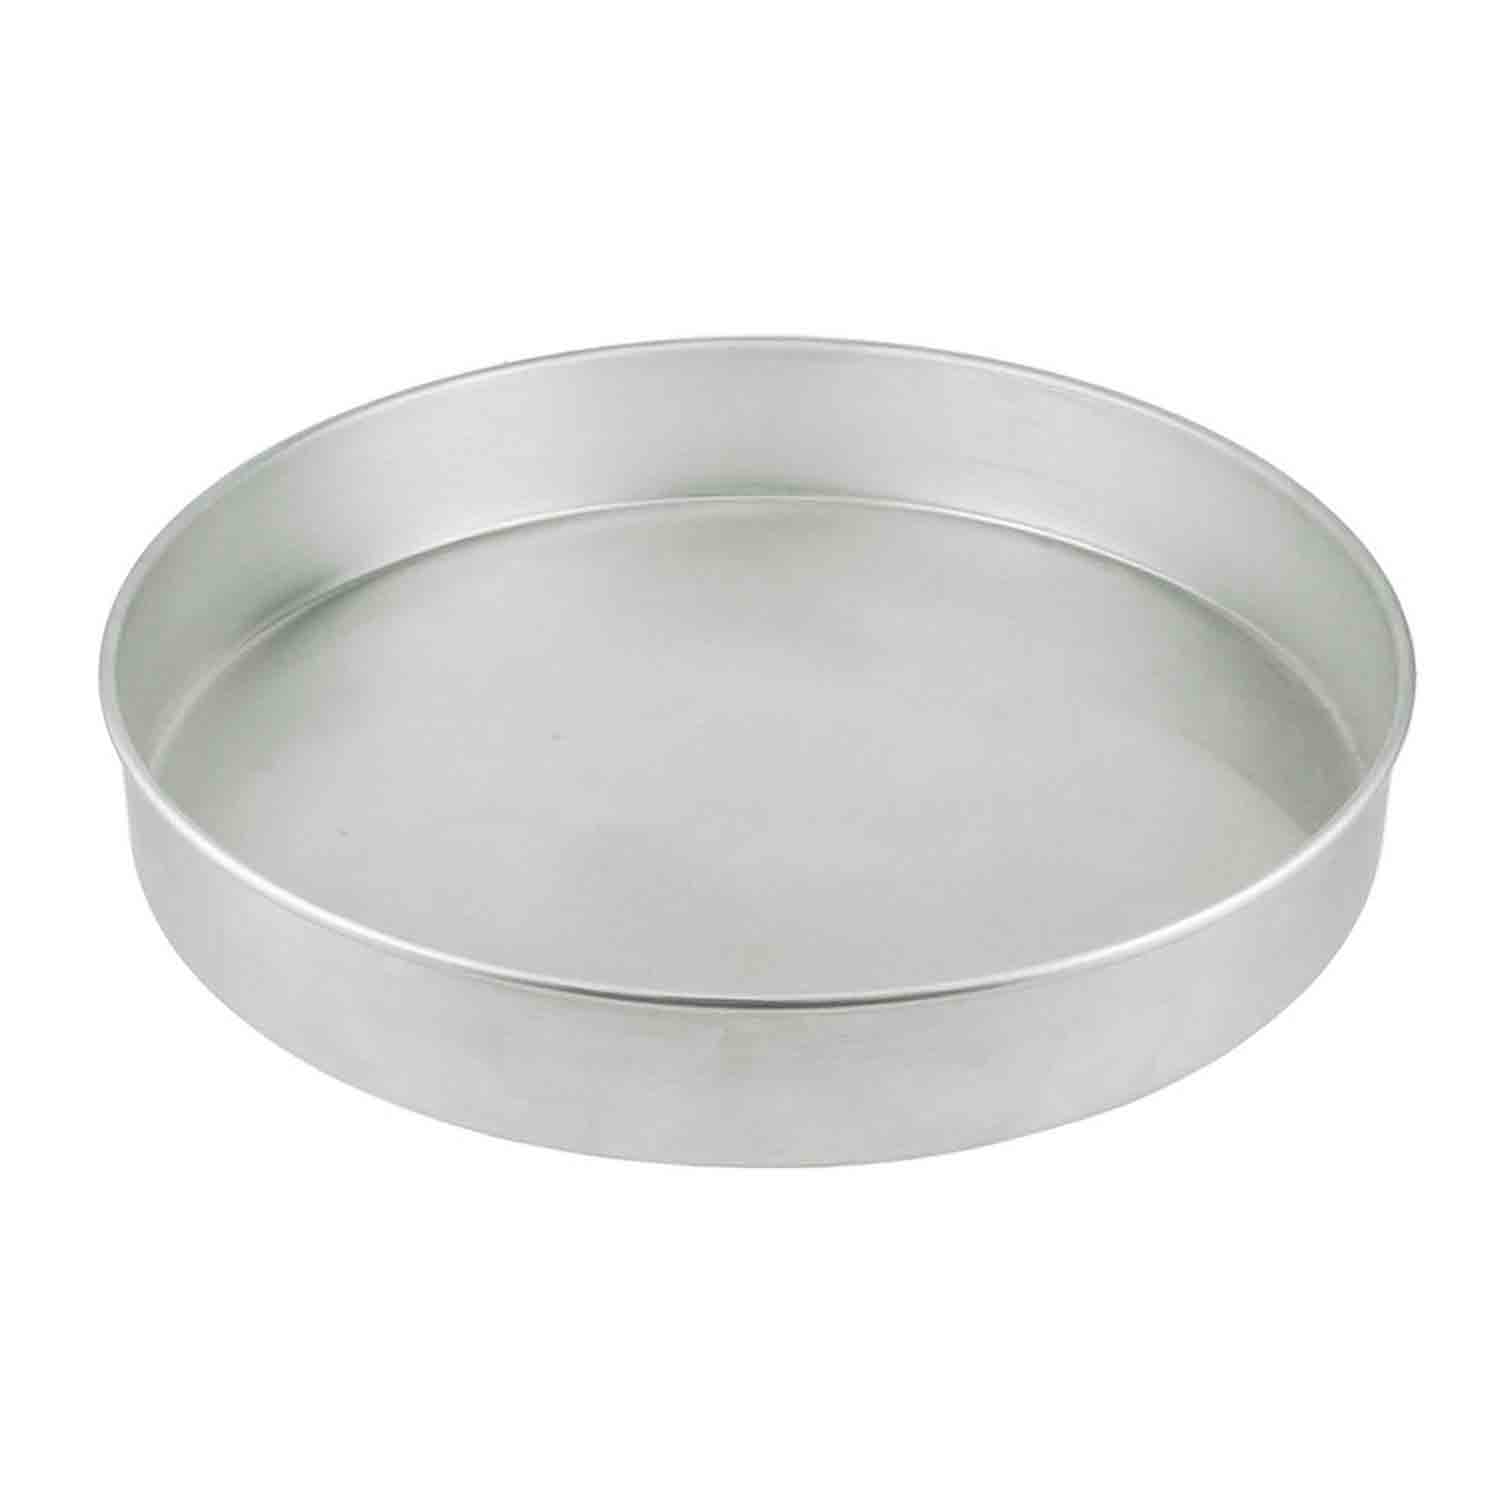 "12 x 2"" Magic Line Round Cake Pan"